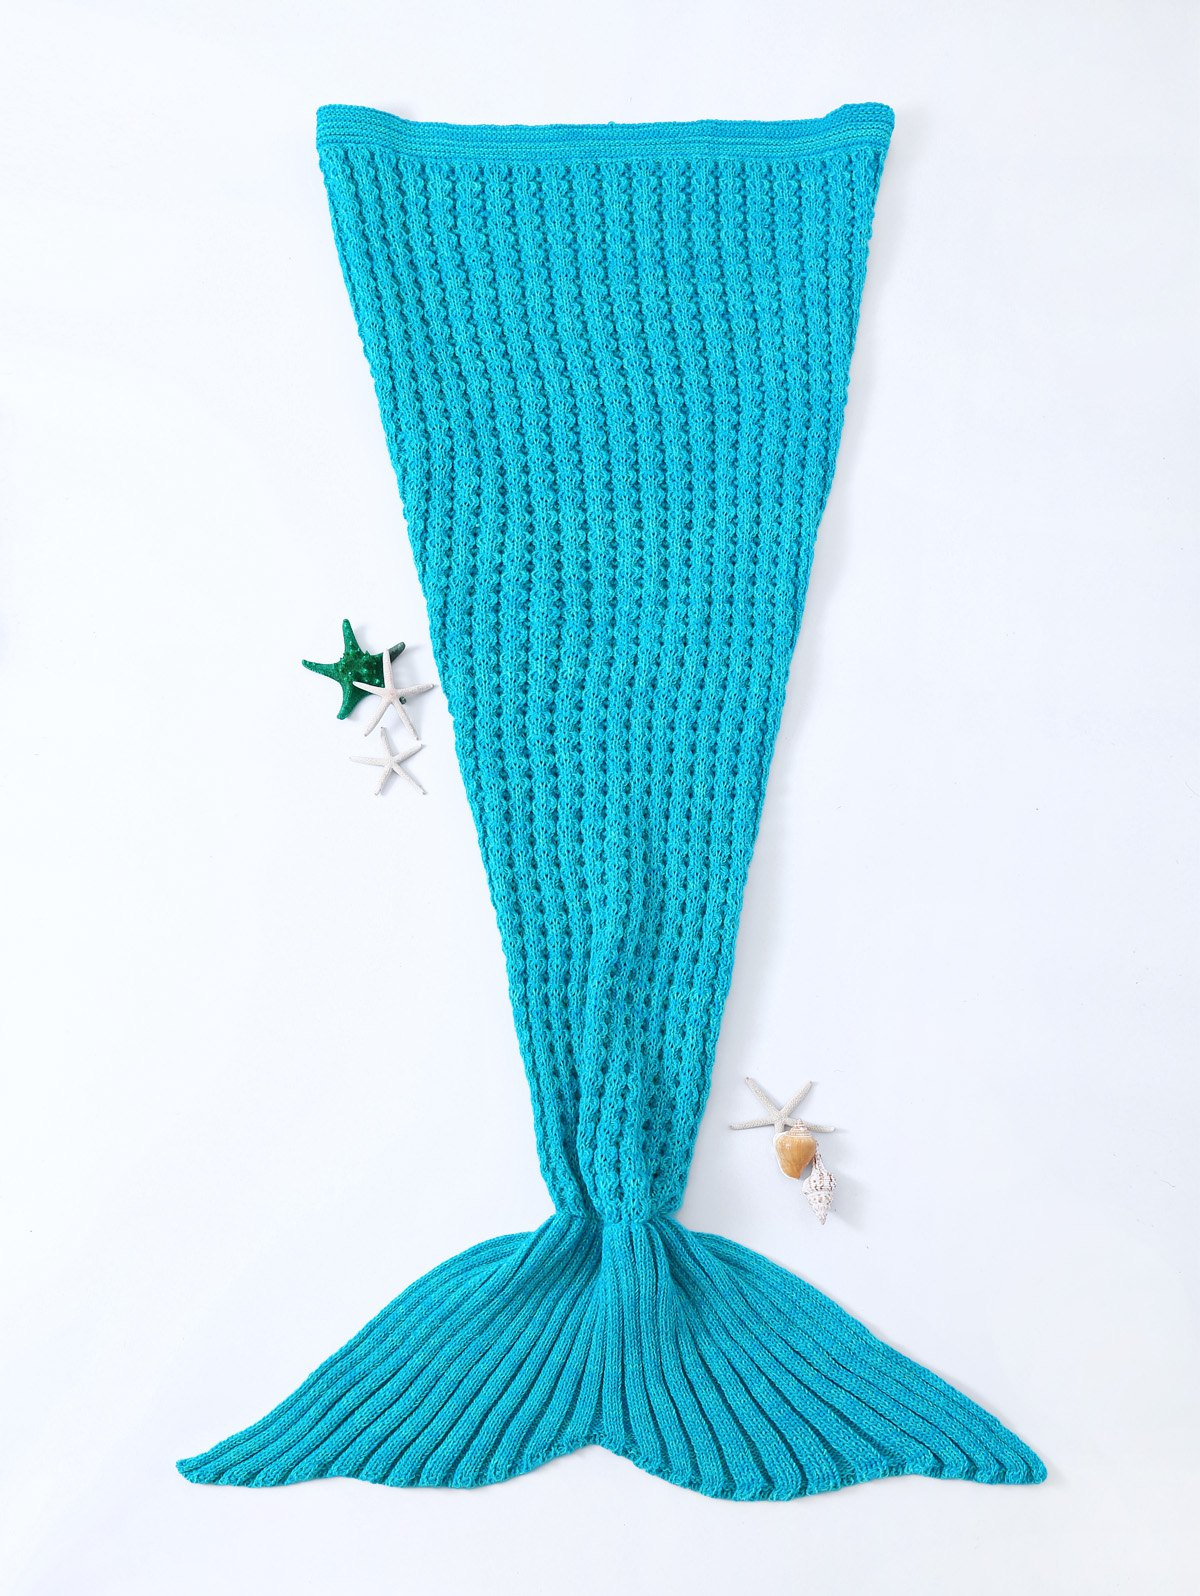 Mode bleu Crochet Tricoté Mermaid Tail design Blanket For Children - Bleu